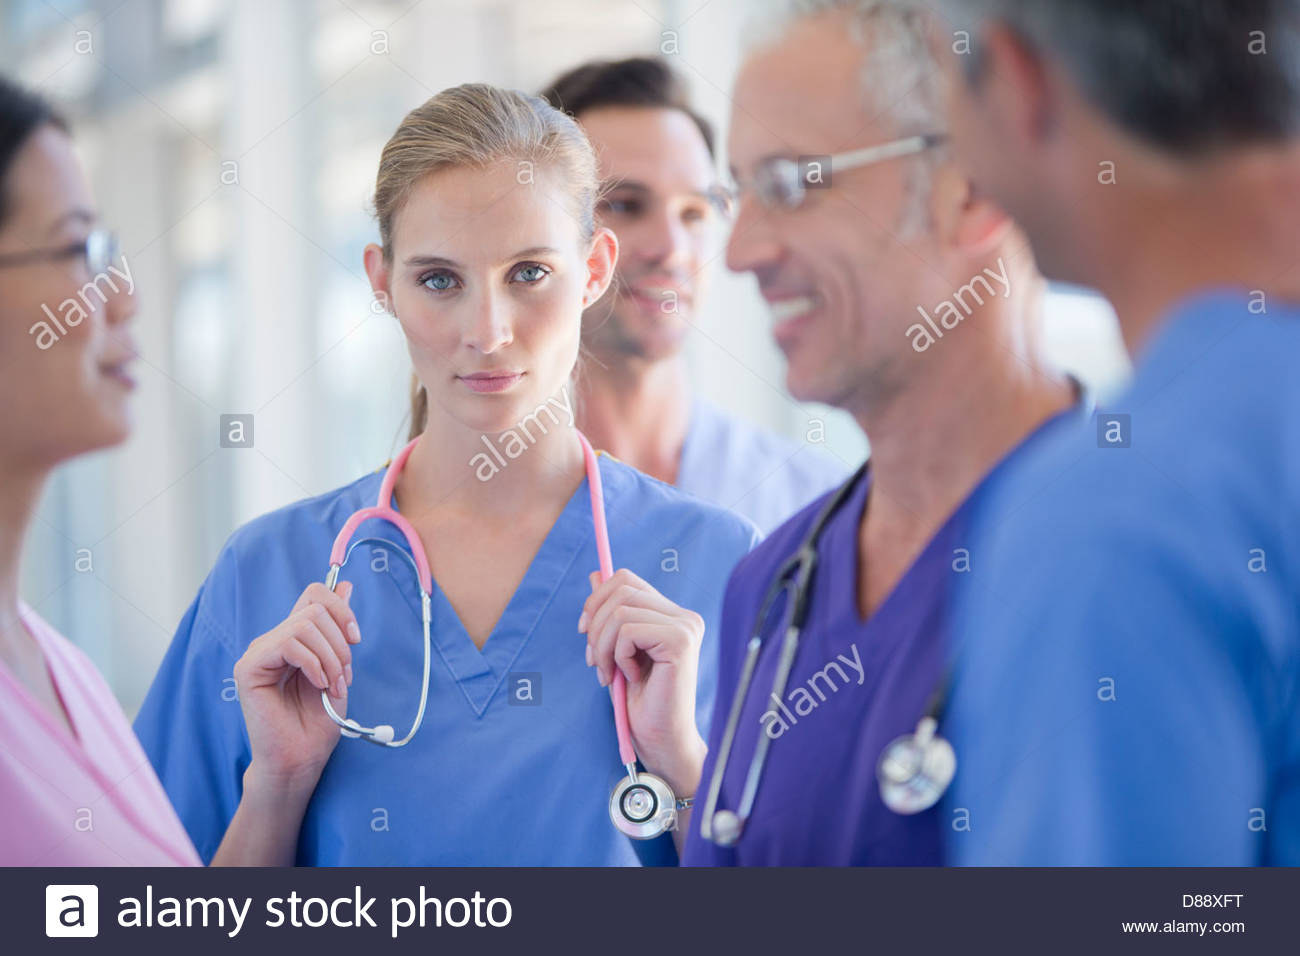 Portrait of serious doctor among co-workers - Stock Image